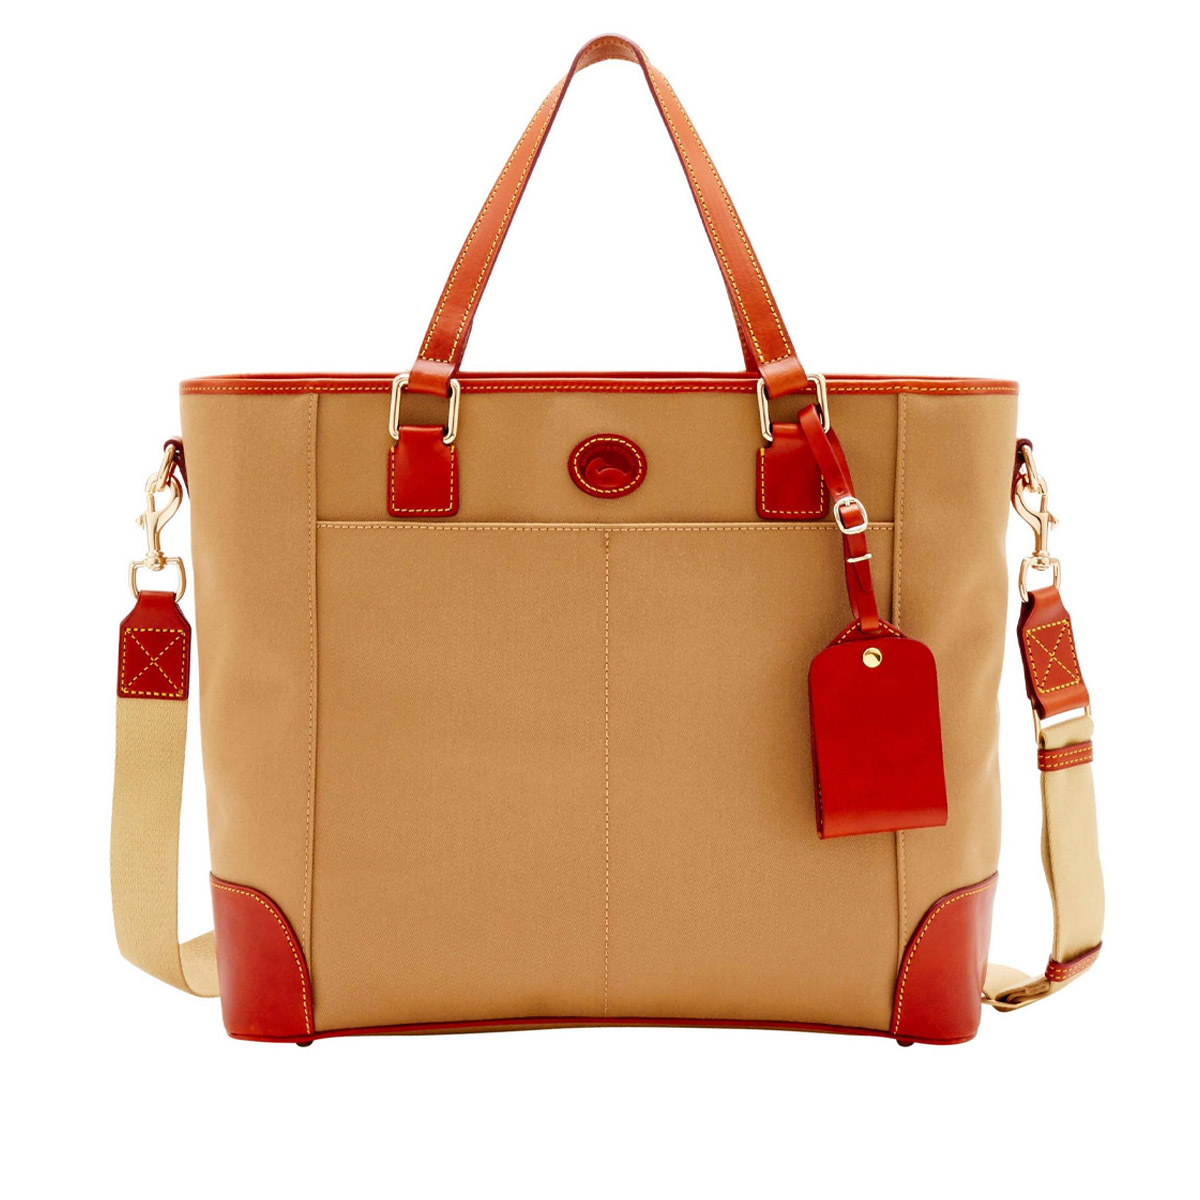 Dooney & Bourke Newport Tote - Contributed by D&B, this durable bag is crafted from Cabriolet cloth and features vachetta leather trim. Truly a style that is timeless.Retail Value: $358.00